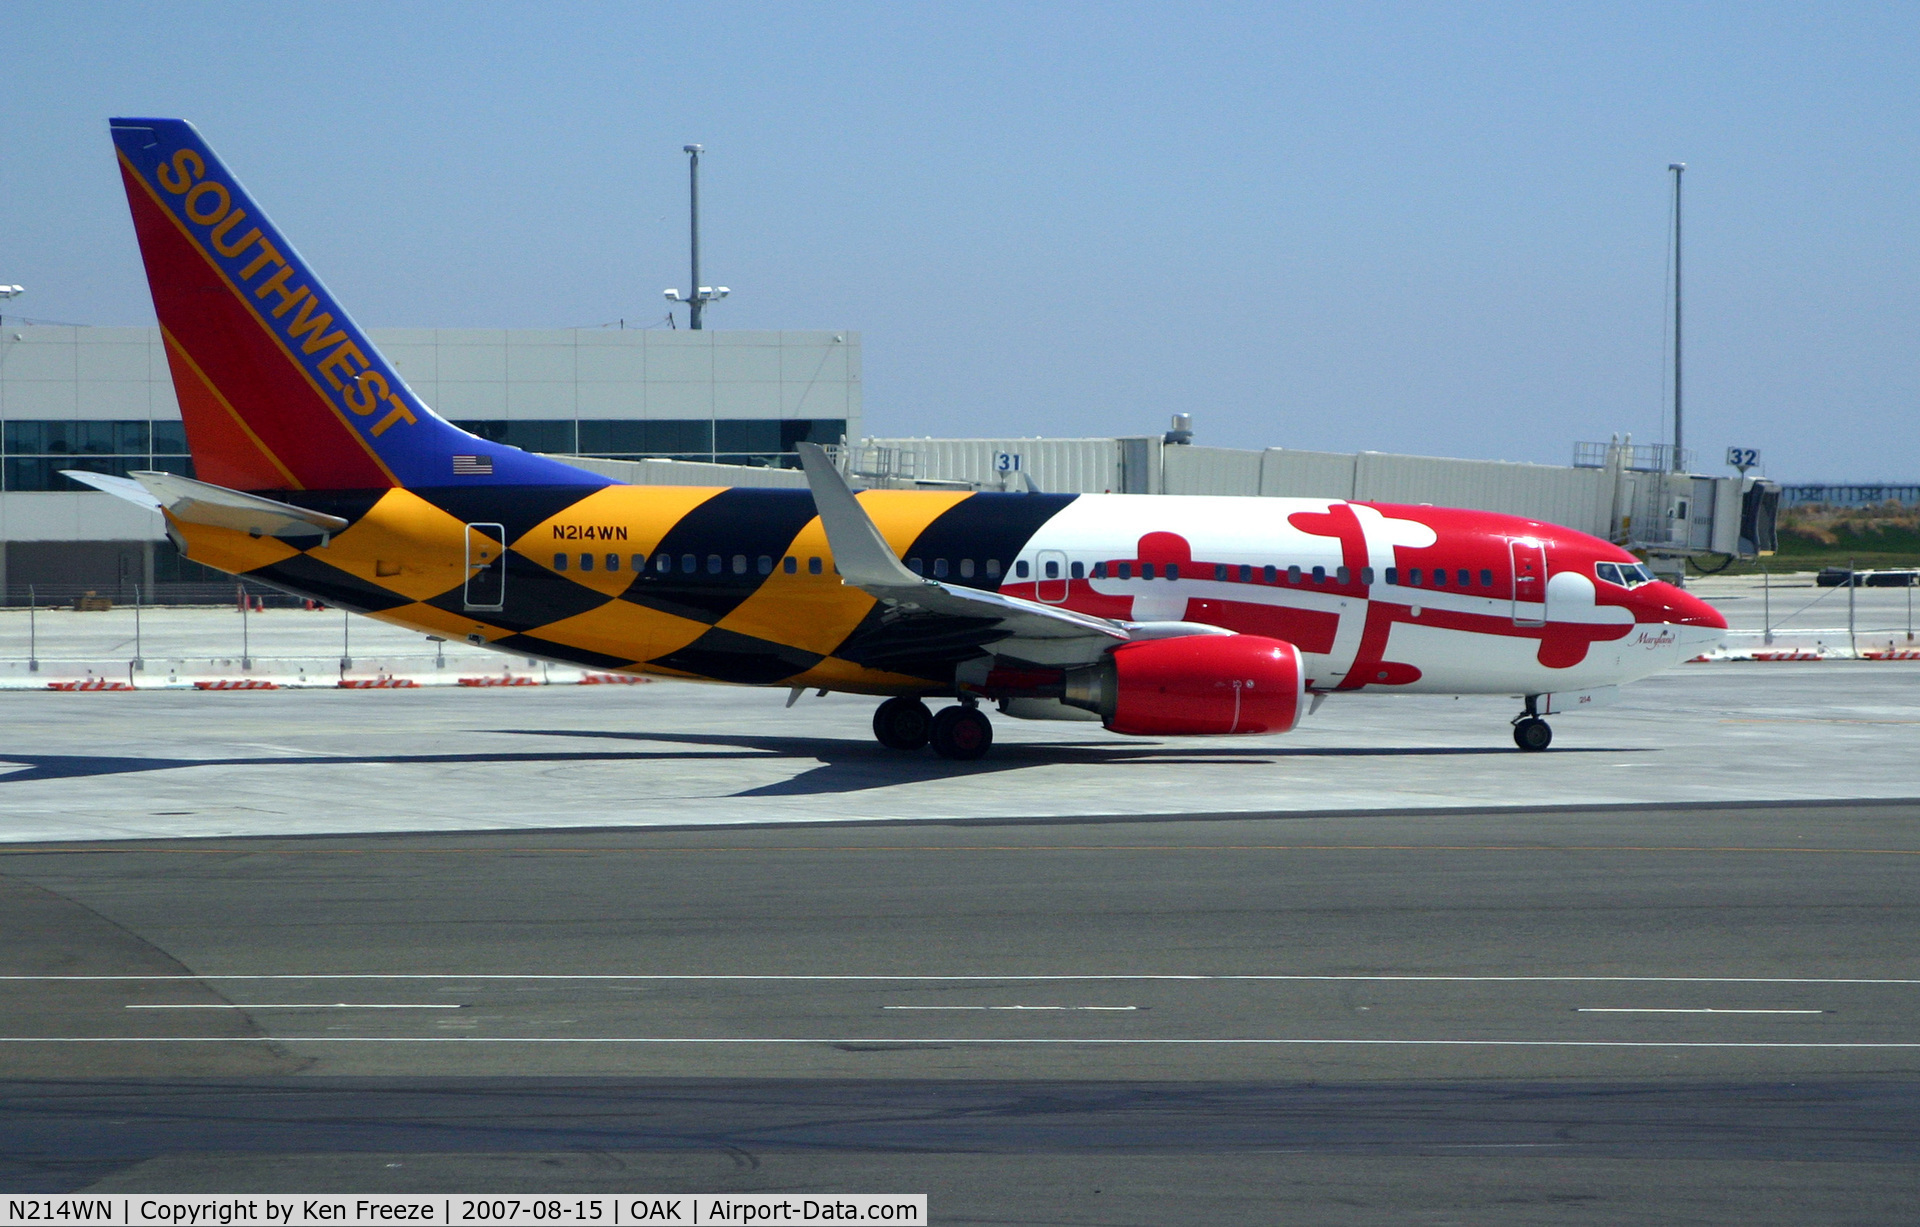 N214WN, 2005 Boeing 737-7H4 C/N 32486, SouthWest 737 in the Maryland state flag colors